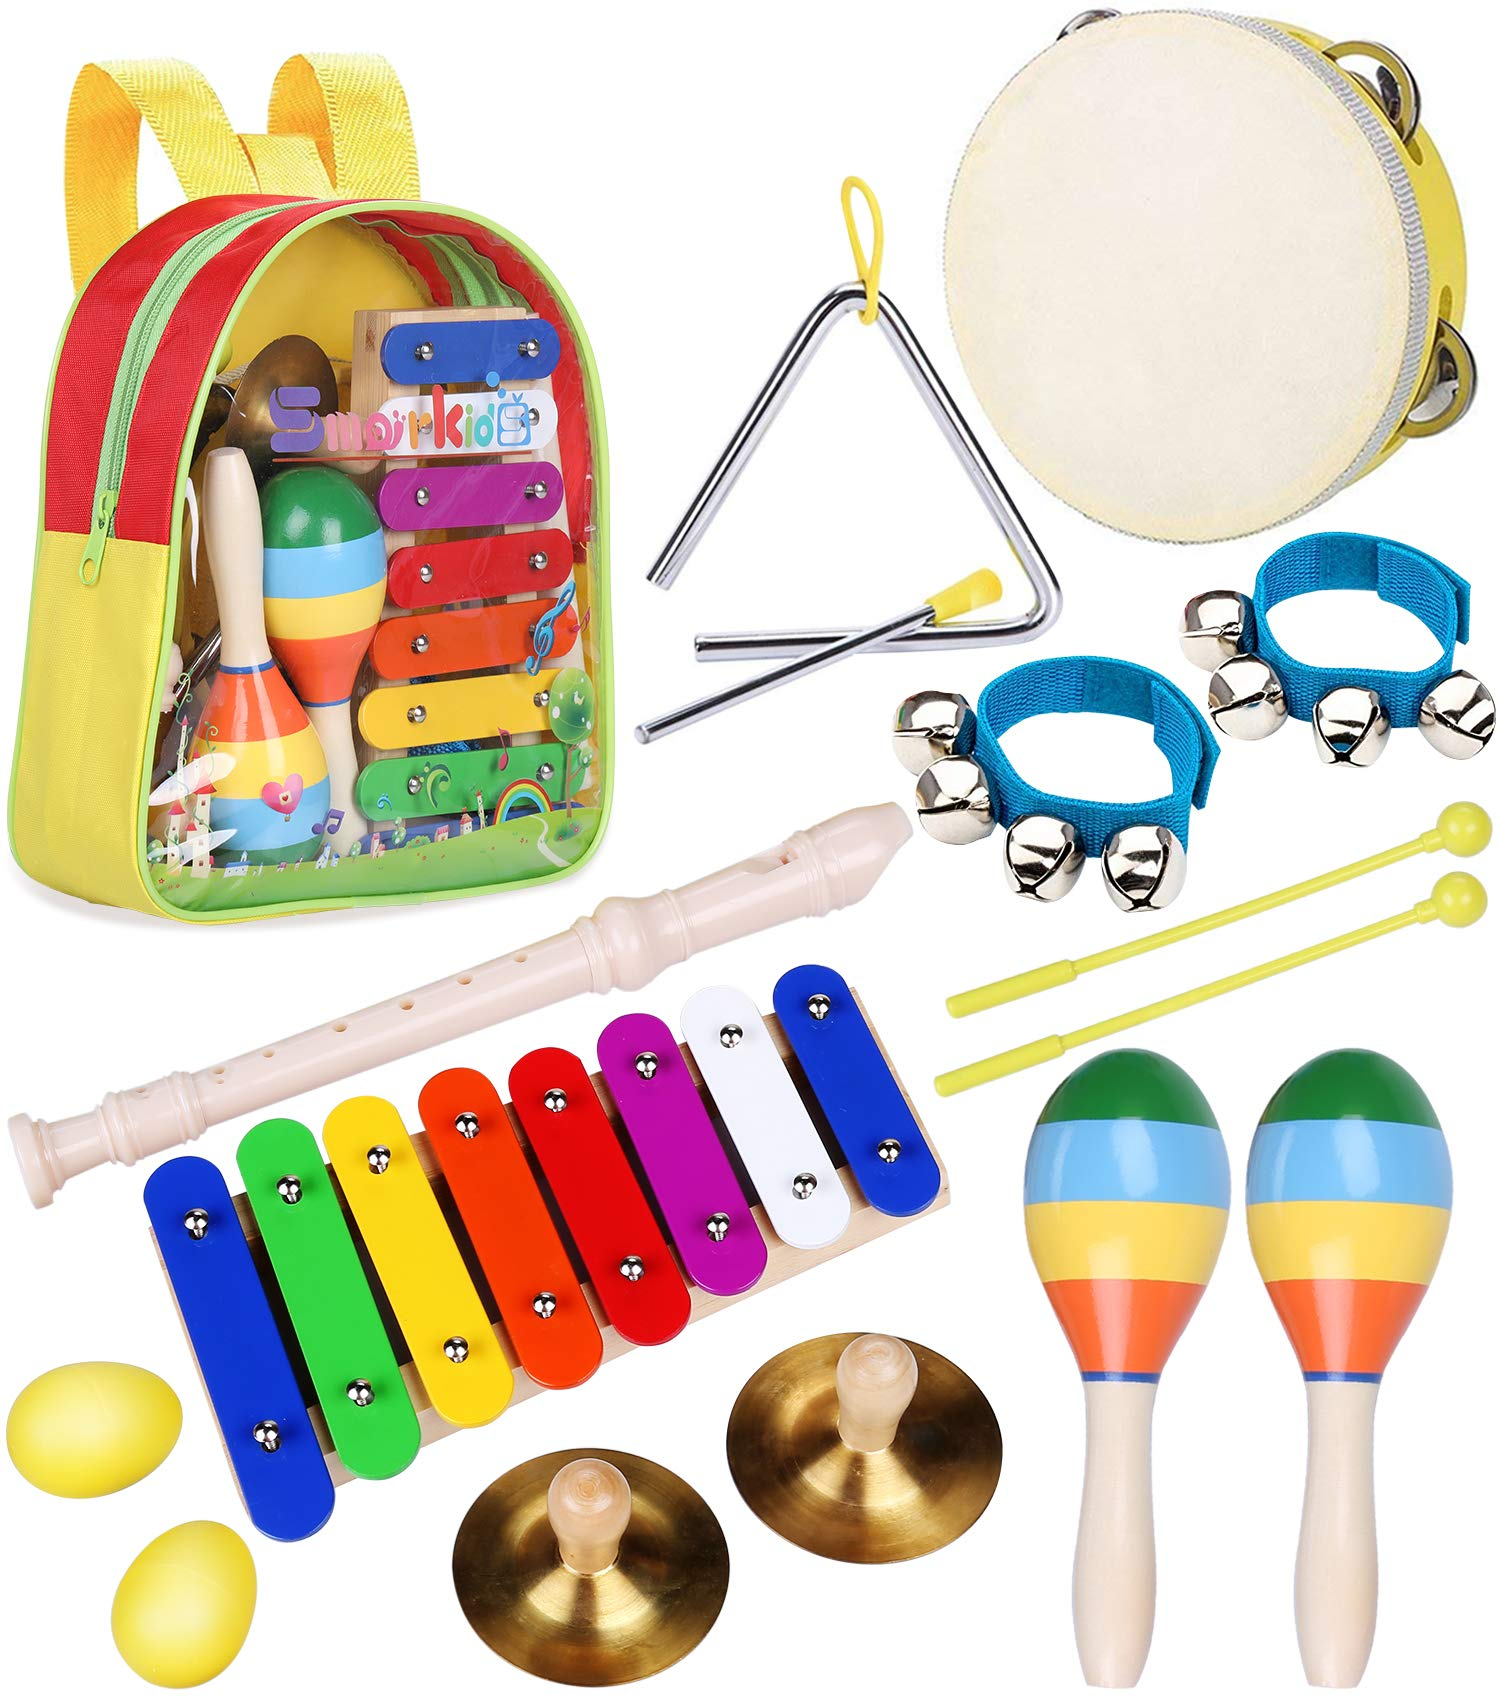 Toddler Musical Instruments Toys - Smarkids Percussion Instruments Toy Preschool Educational Musical Toys Set for Boys and Girls Including Xylophone Flute Tambourine Maracas with Backpack by Smarkids